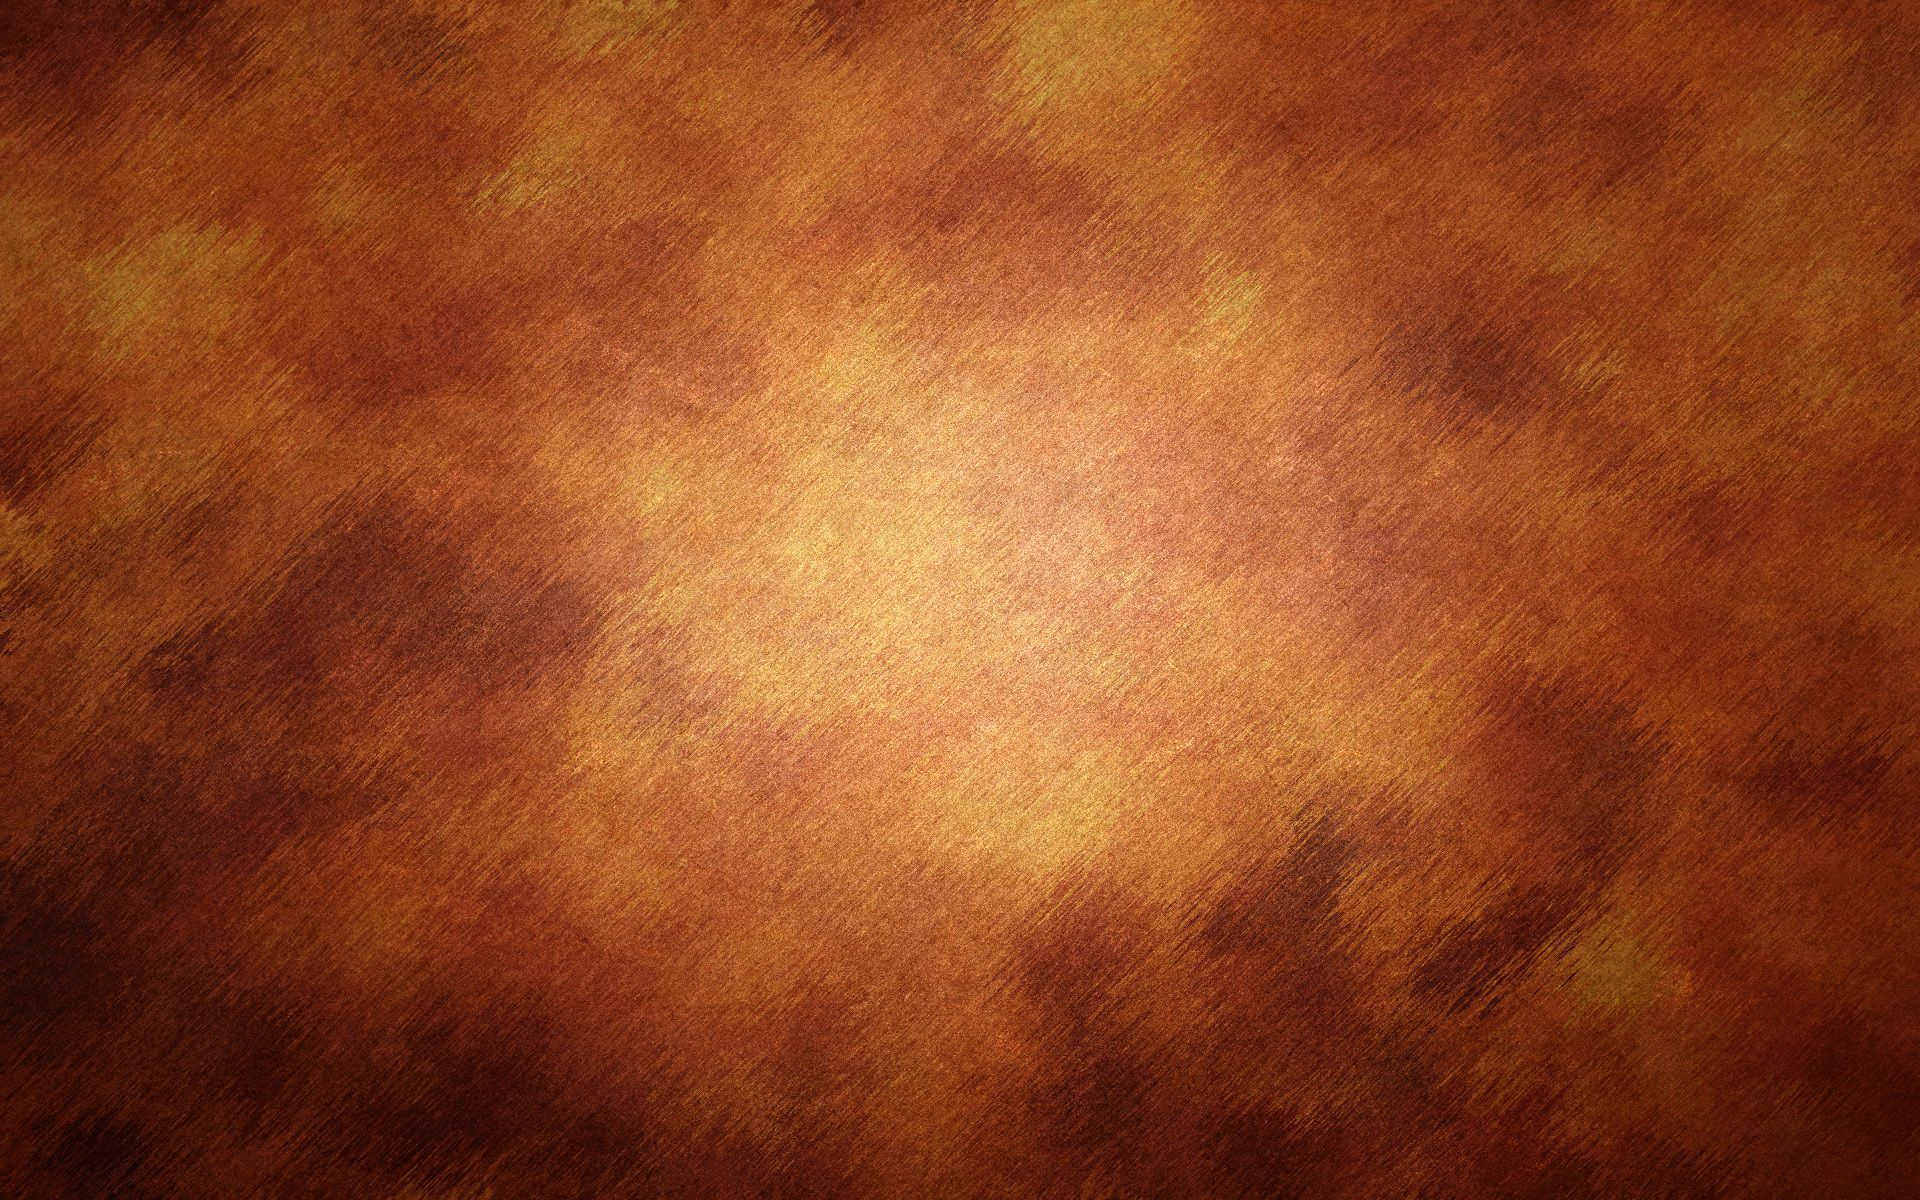 Brown Textured Wallpapers   Top Brown Textured Backgrounds 1920x1200